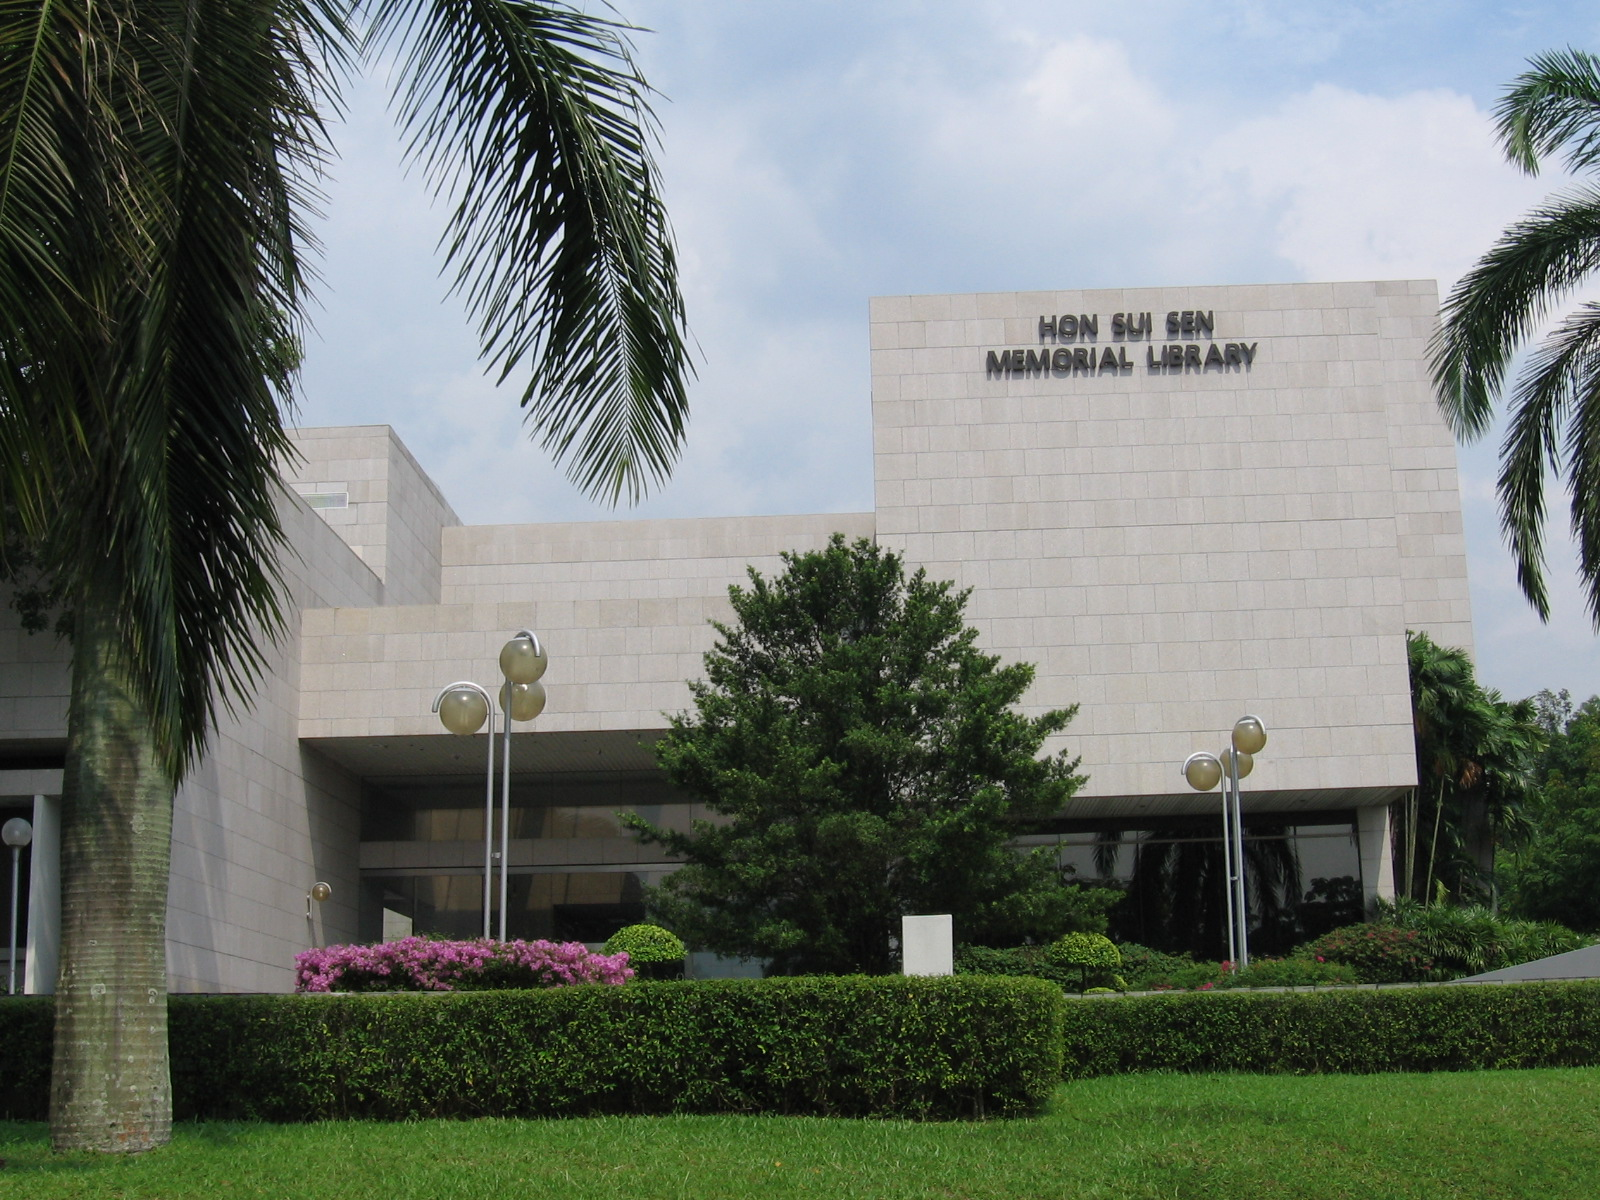 File:NUS, Hon Sui Sen Memorial Library 3, Nov 06.JPG - Wikipedia ...